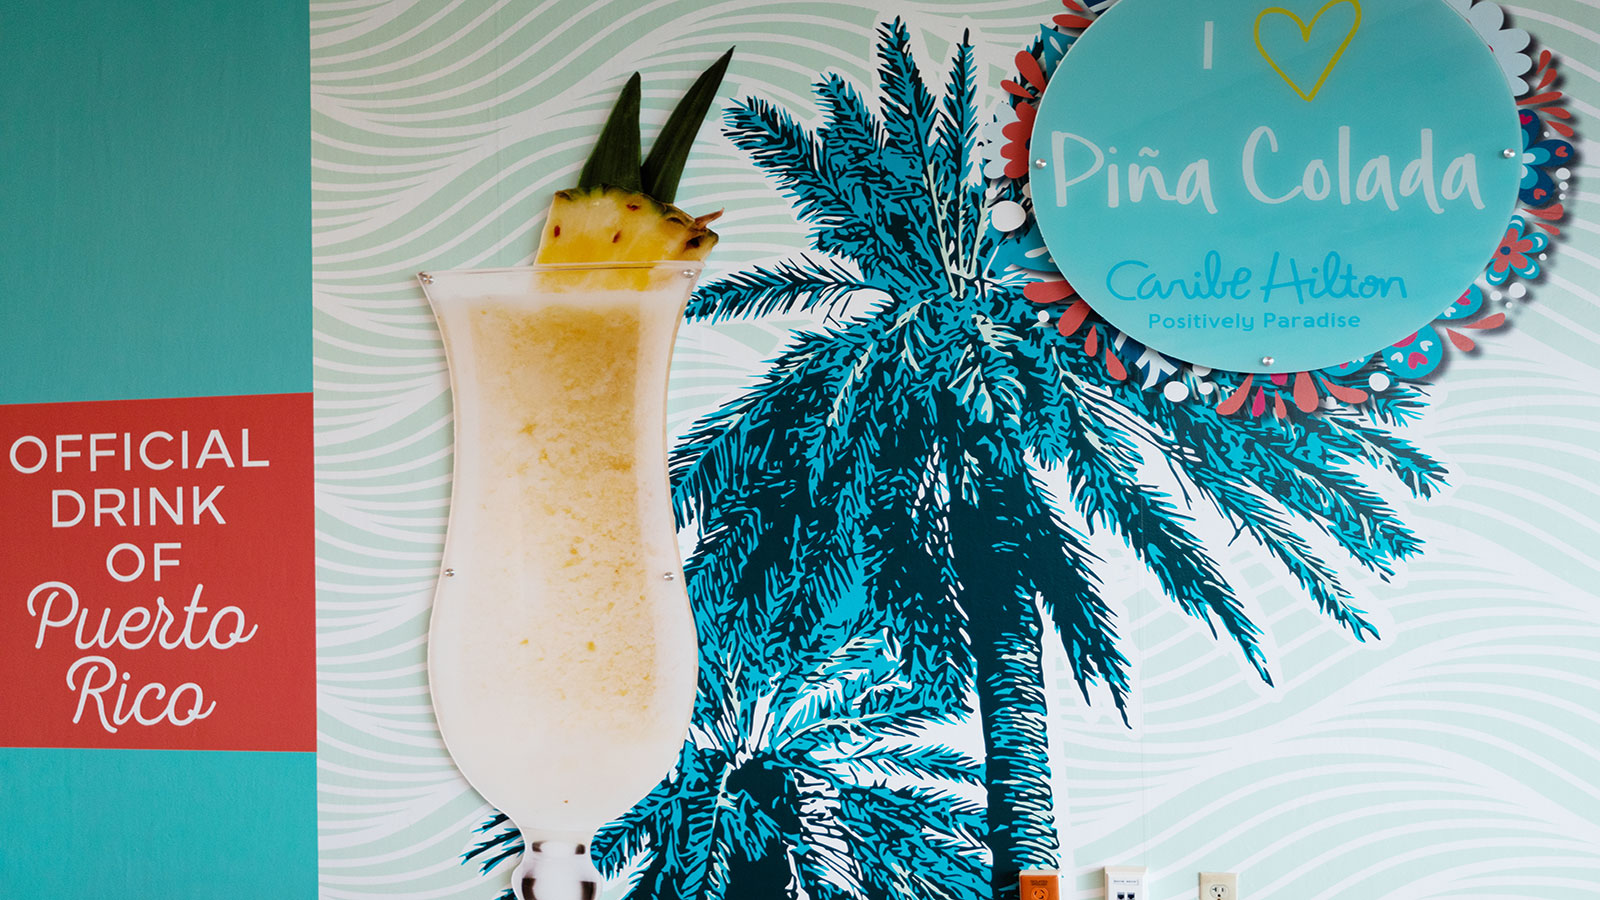 Pina Colada mural at the Caribe Hilton hotel